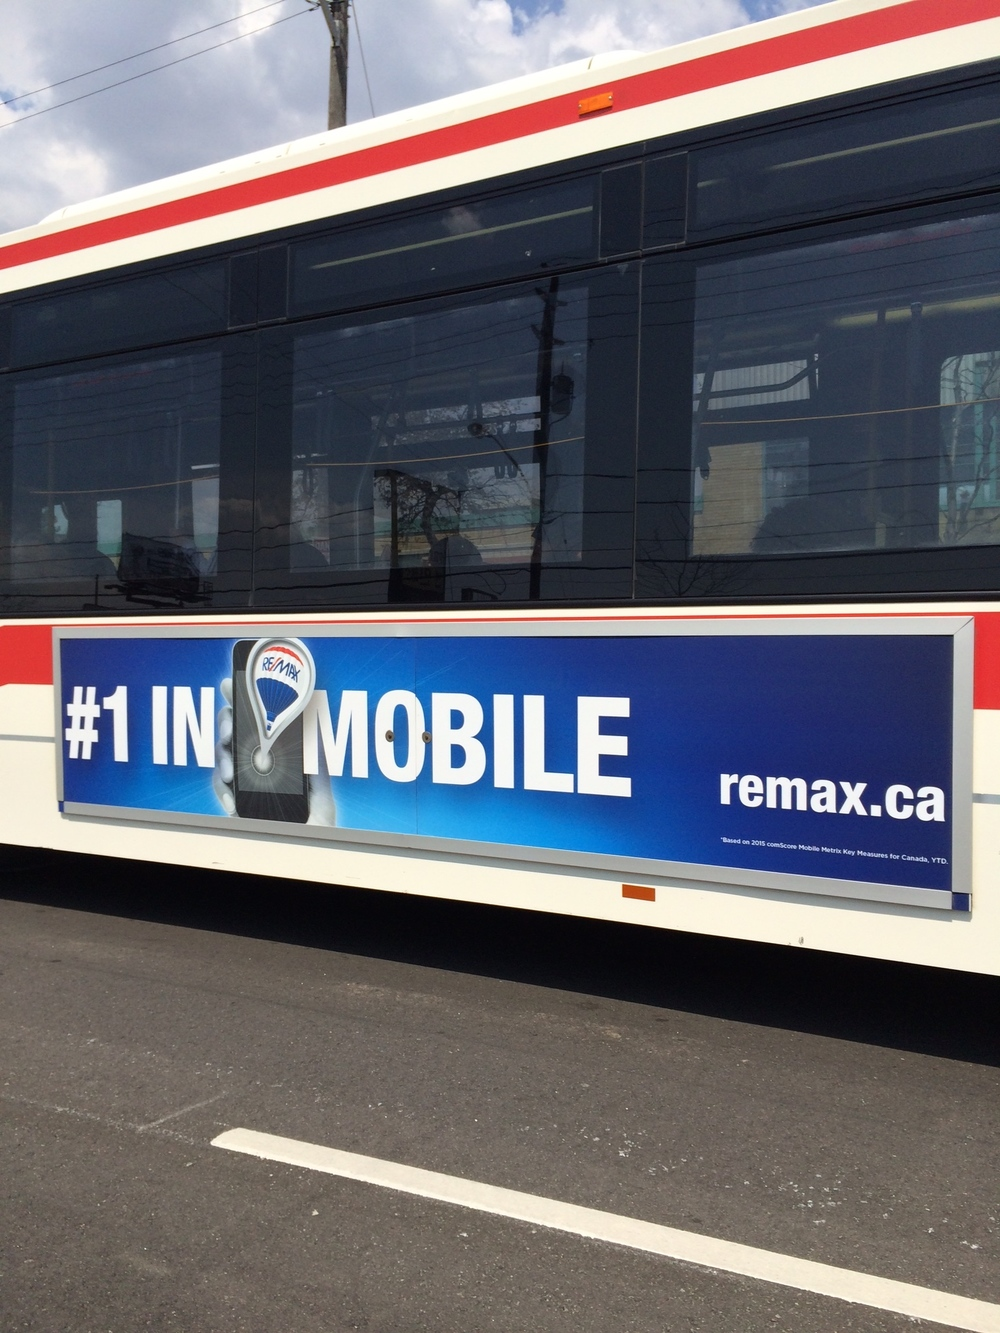 Remax-Mobile No.1.jpg